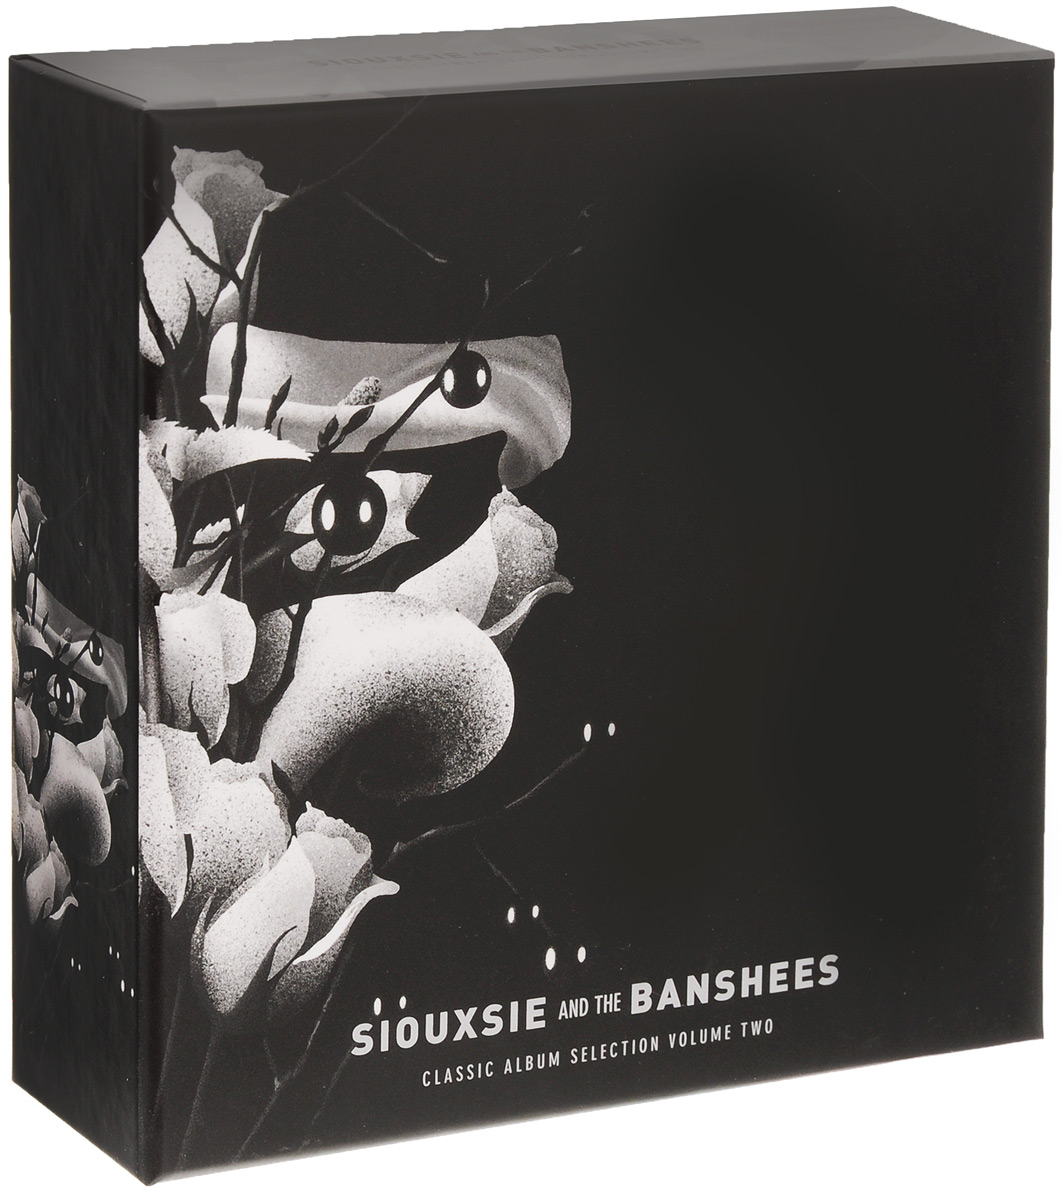 Siouxsie And The Banshees Siouxsie And The Banshees. Classic Album Selection. Volume 2 (6 CD) thing classic volume 2